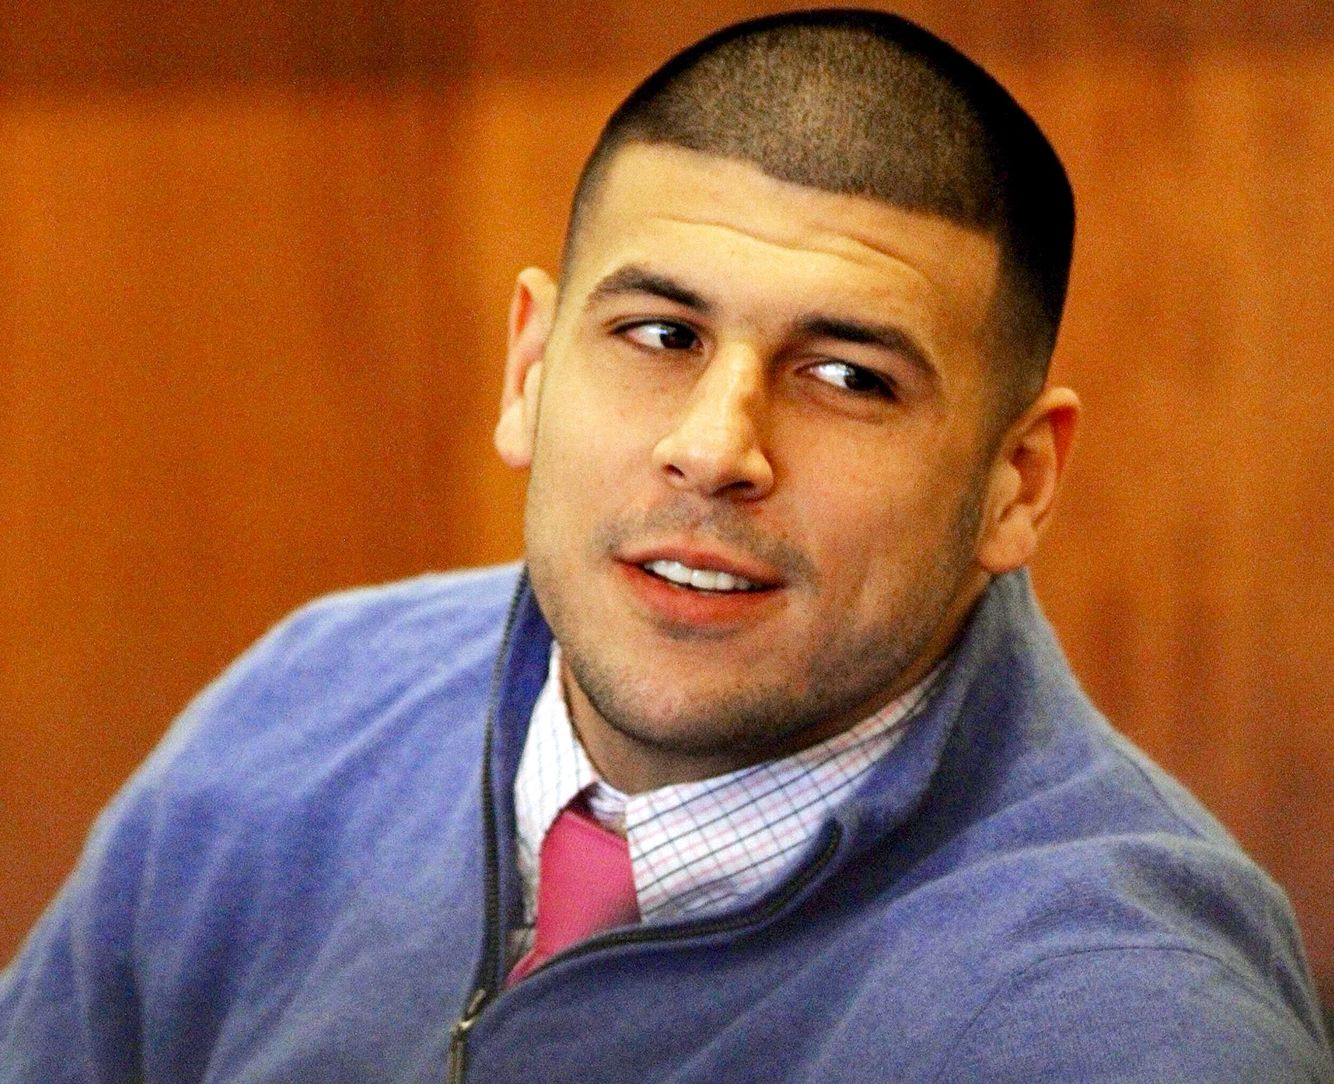 Aaron hernandez was cut by the new england patriots after he was - Aaron Hernandez New England Patriots